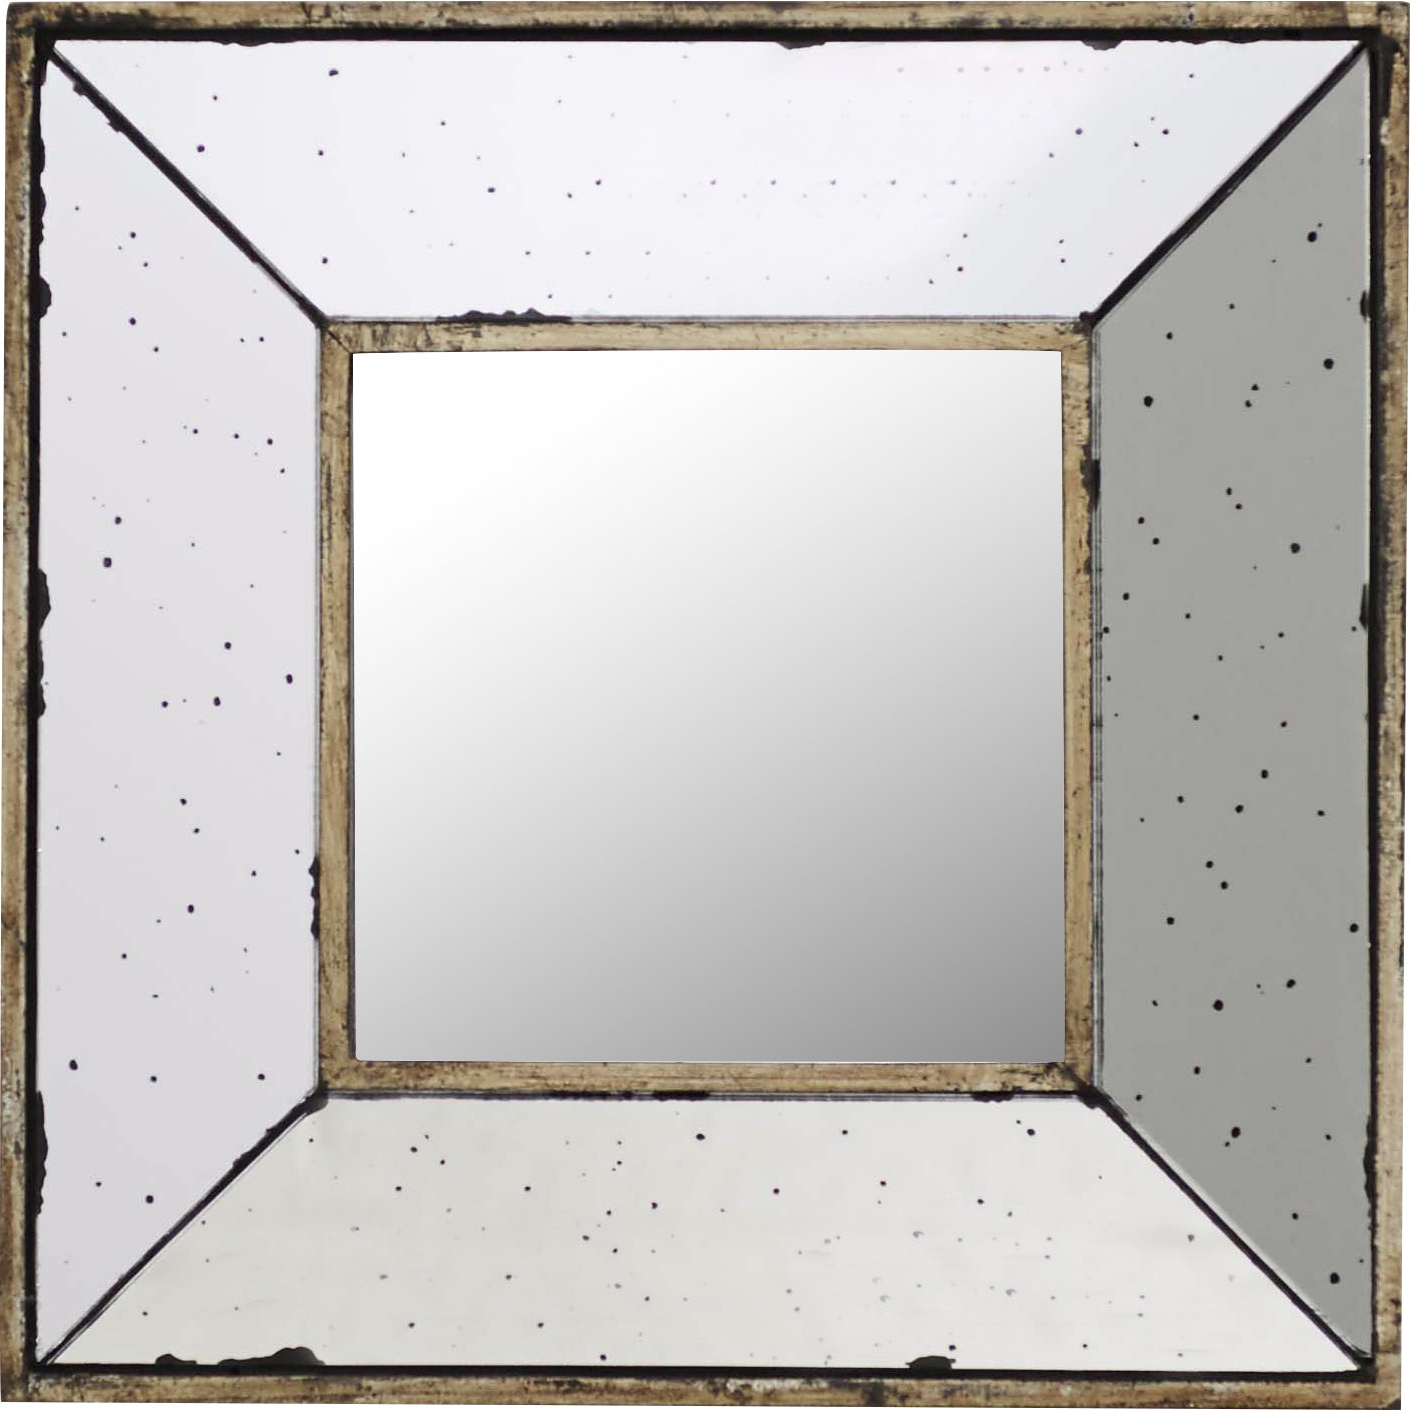 2 Piece Priscilla Square Traditional Beveled Distressed Accent Mirror Sets Pertaining To 2020 Lark Manor Traditional Square Glass Wall Mirror (Gallery 20 of 20)